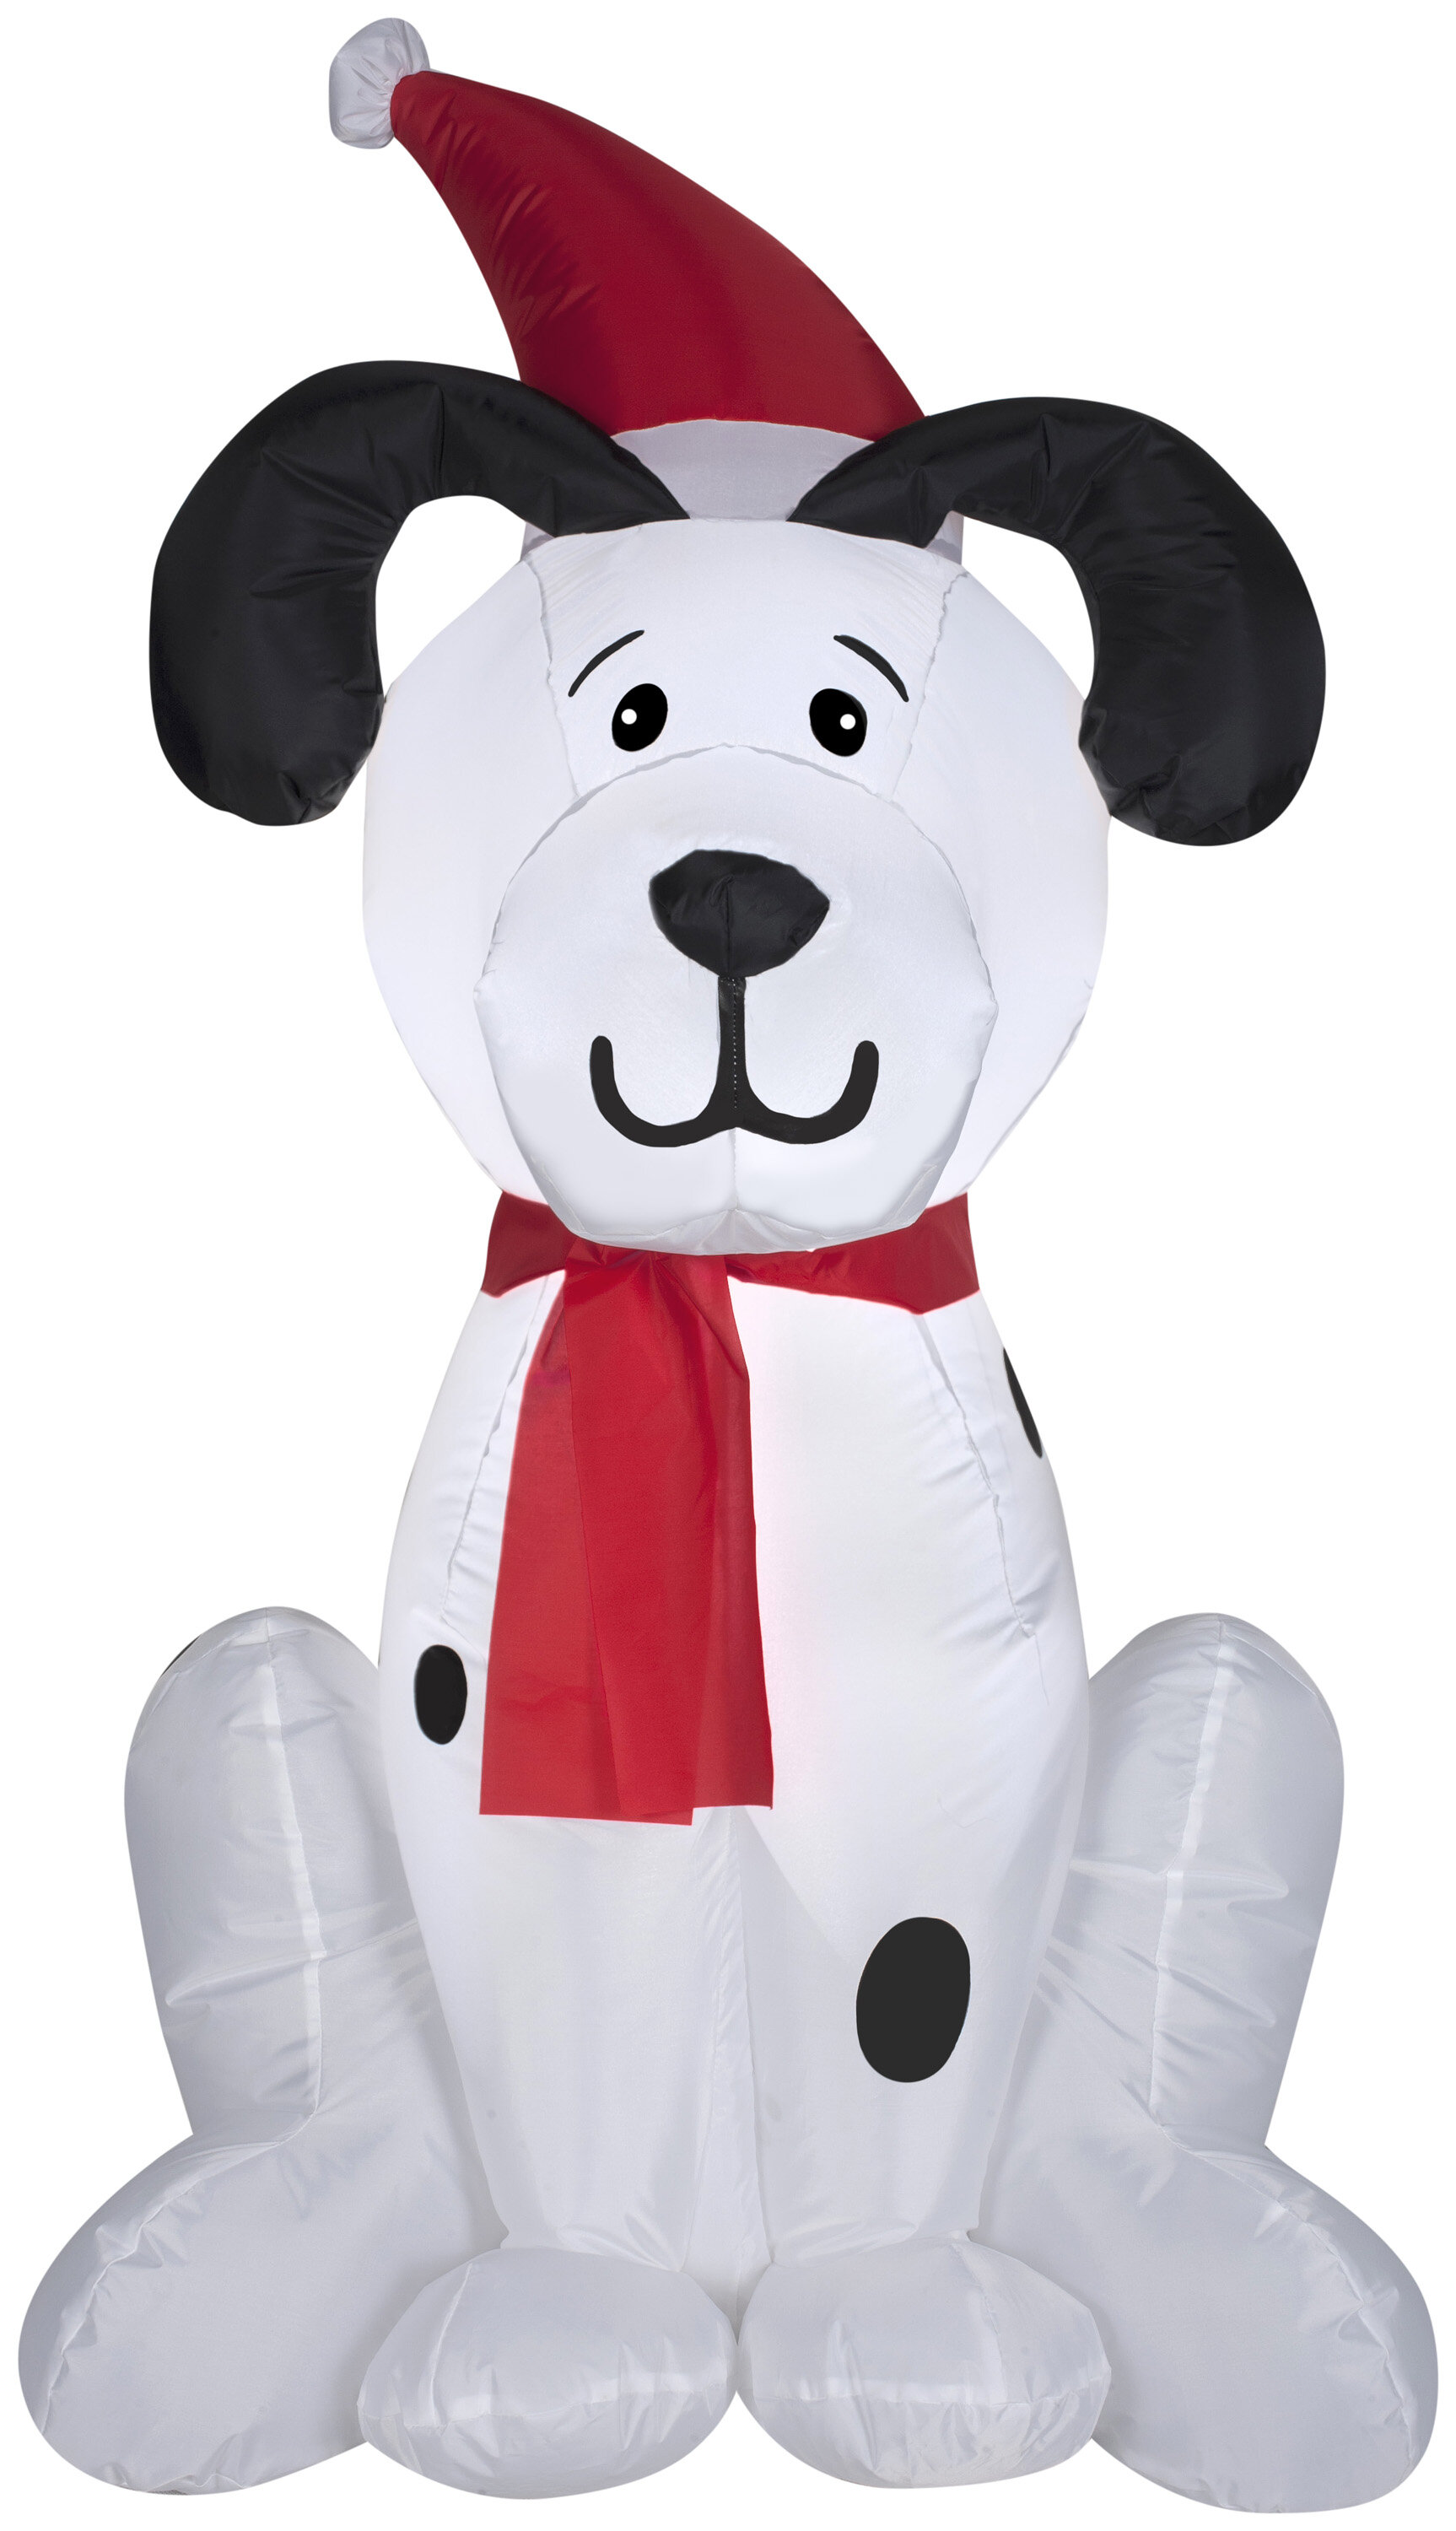 The Holiday Aisle Dalmation Puppy Christmas Inflatable | Wayfair